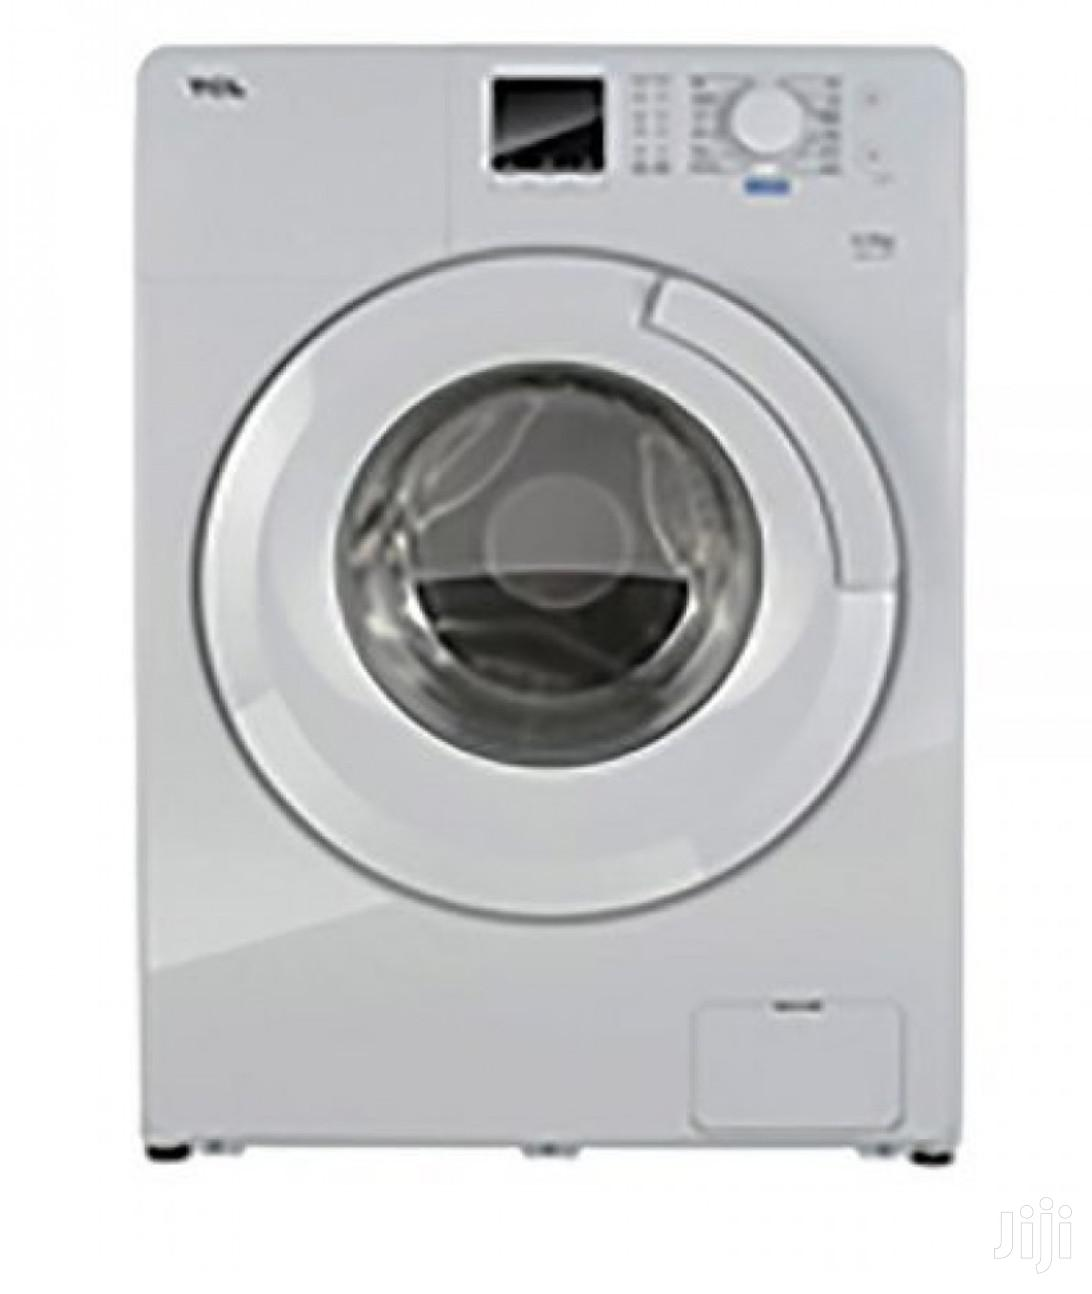 Superb TCL 6kg Front Load Fully Automatic Washing Machine